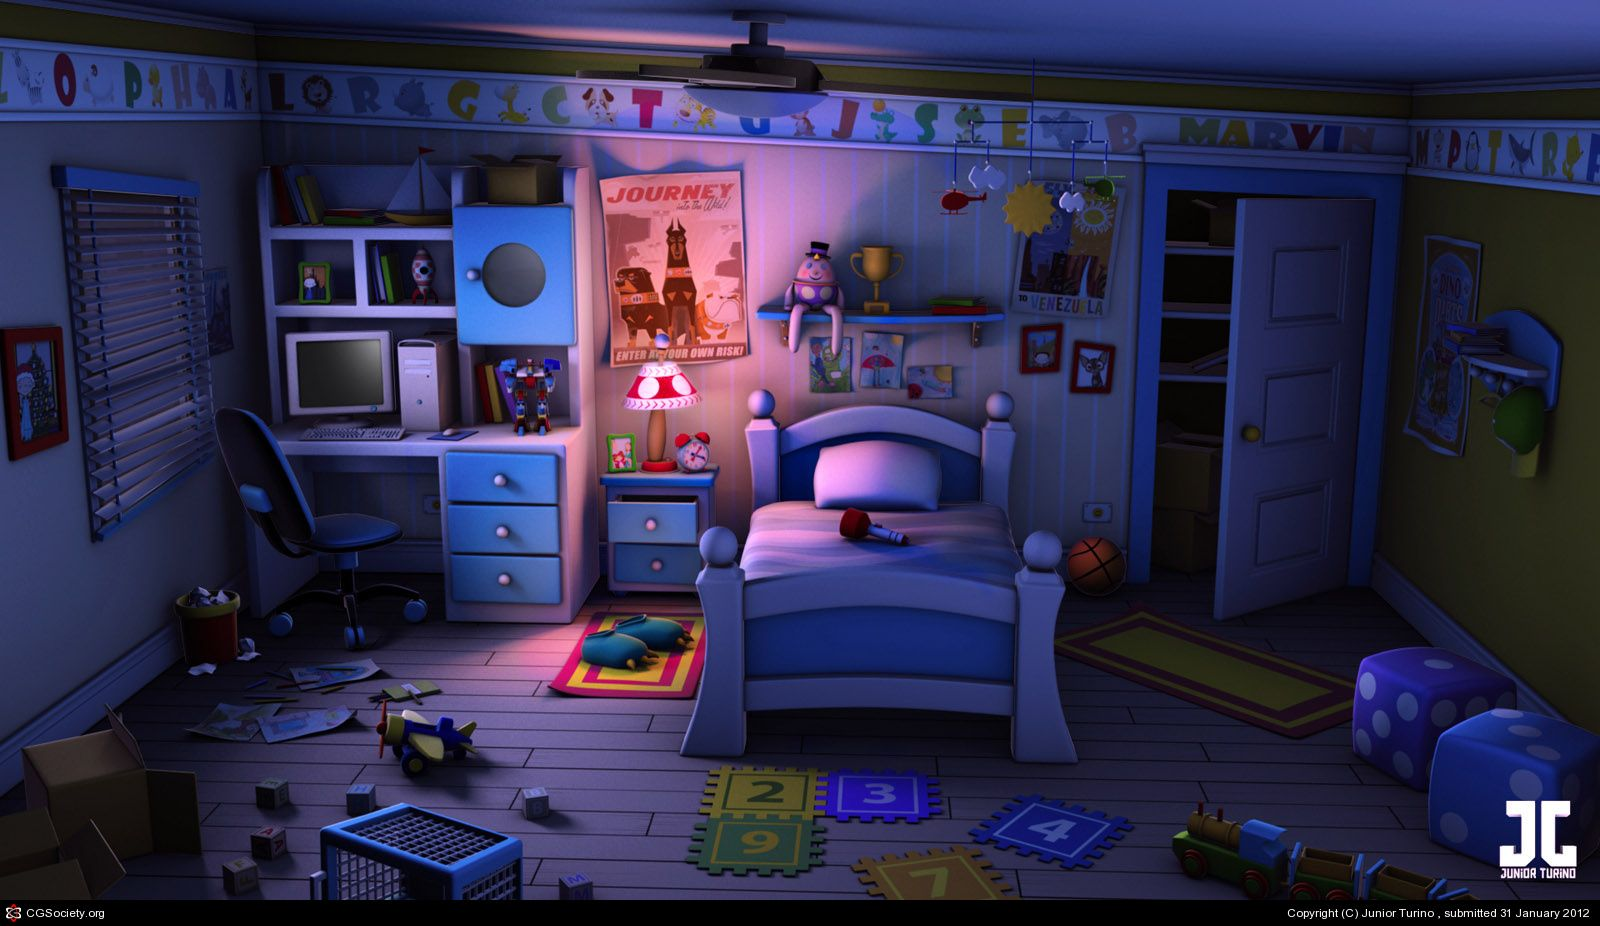 monsters inc bedroom bedroom concept monsters inc search 컨셉 배경 12654